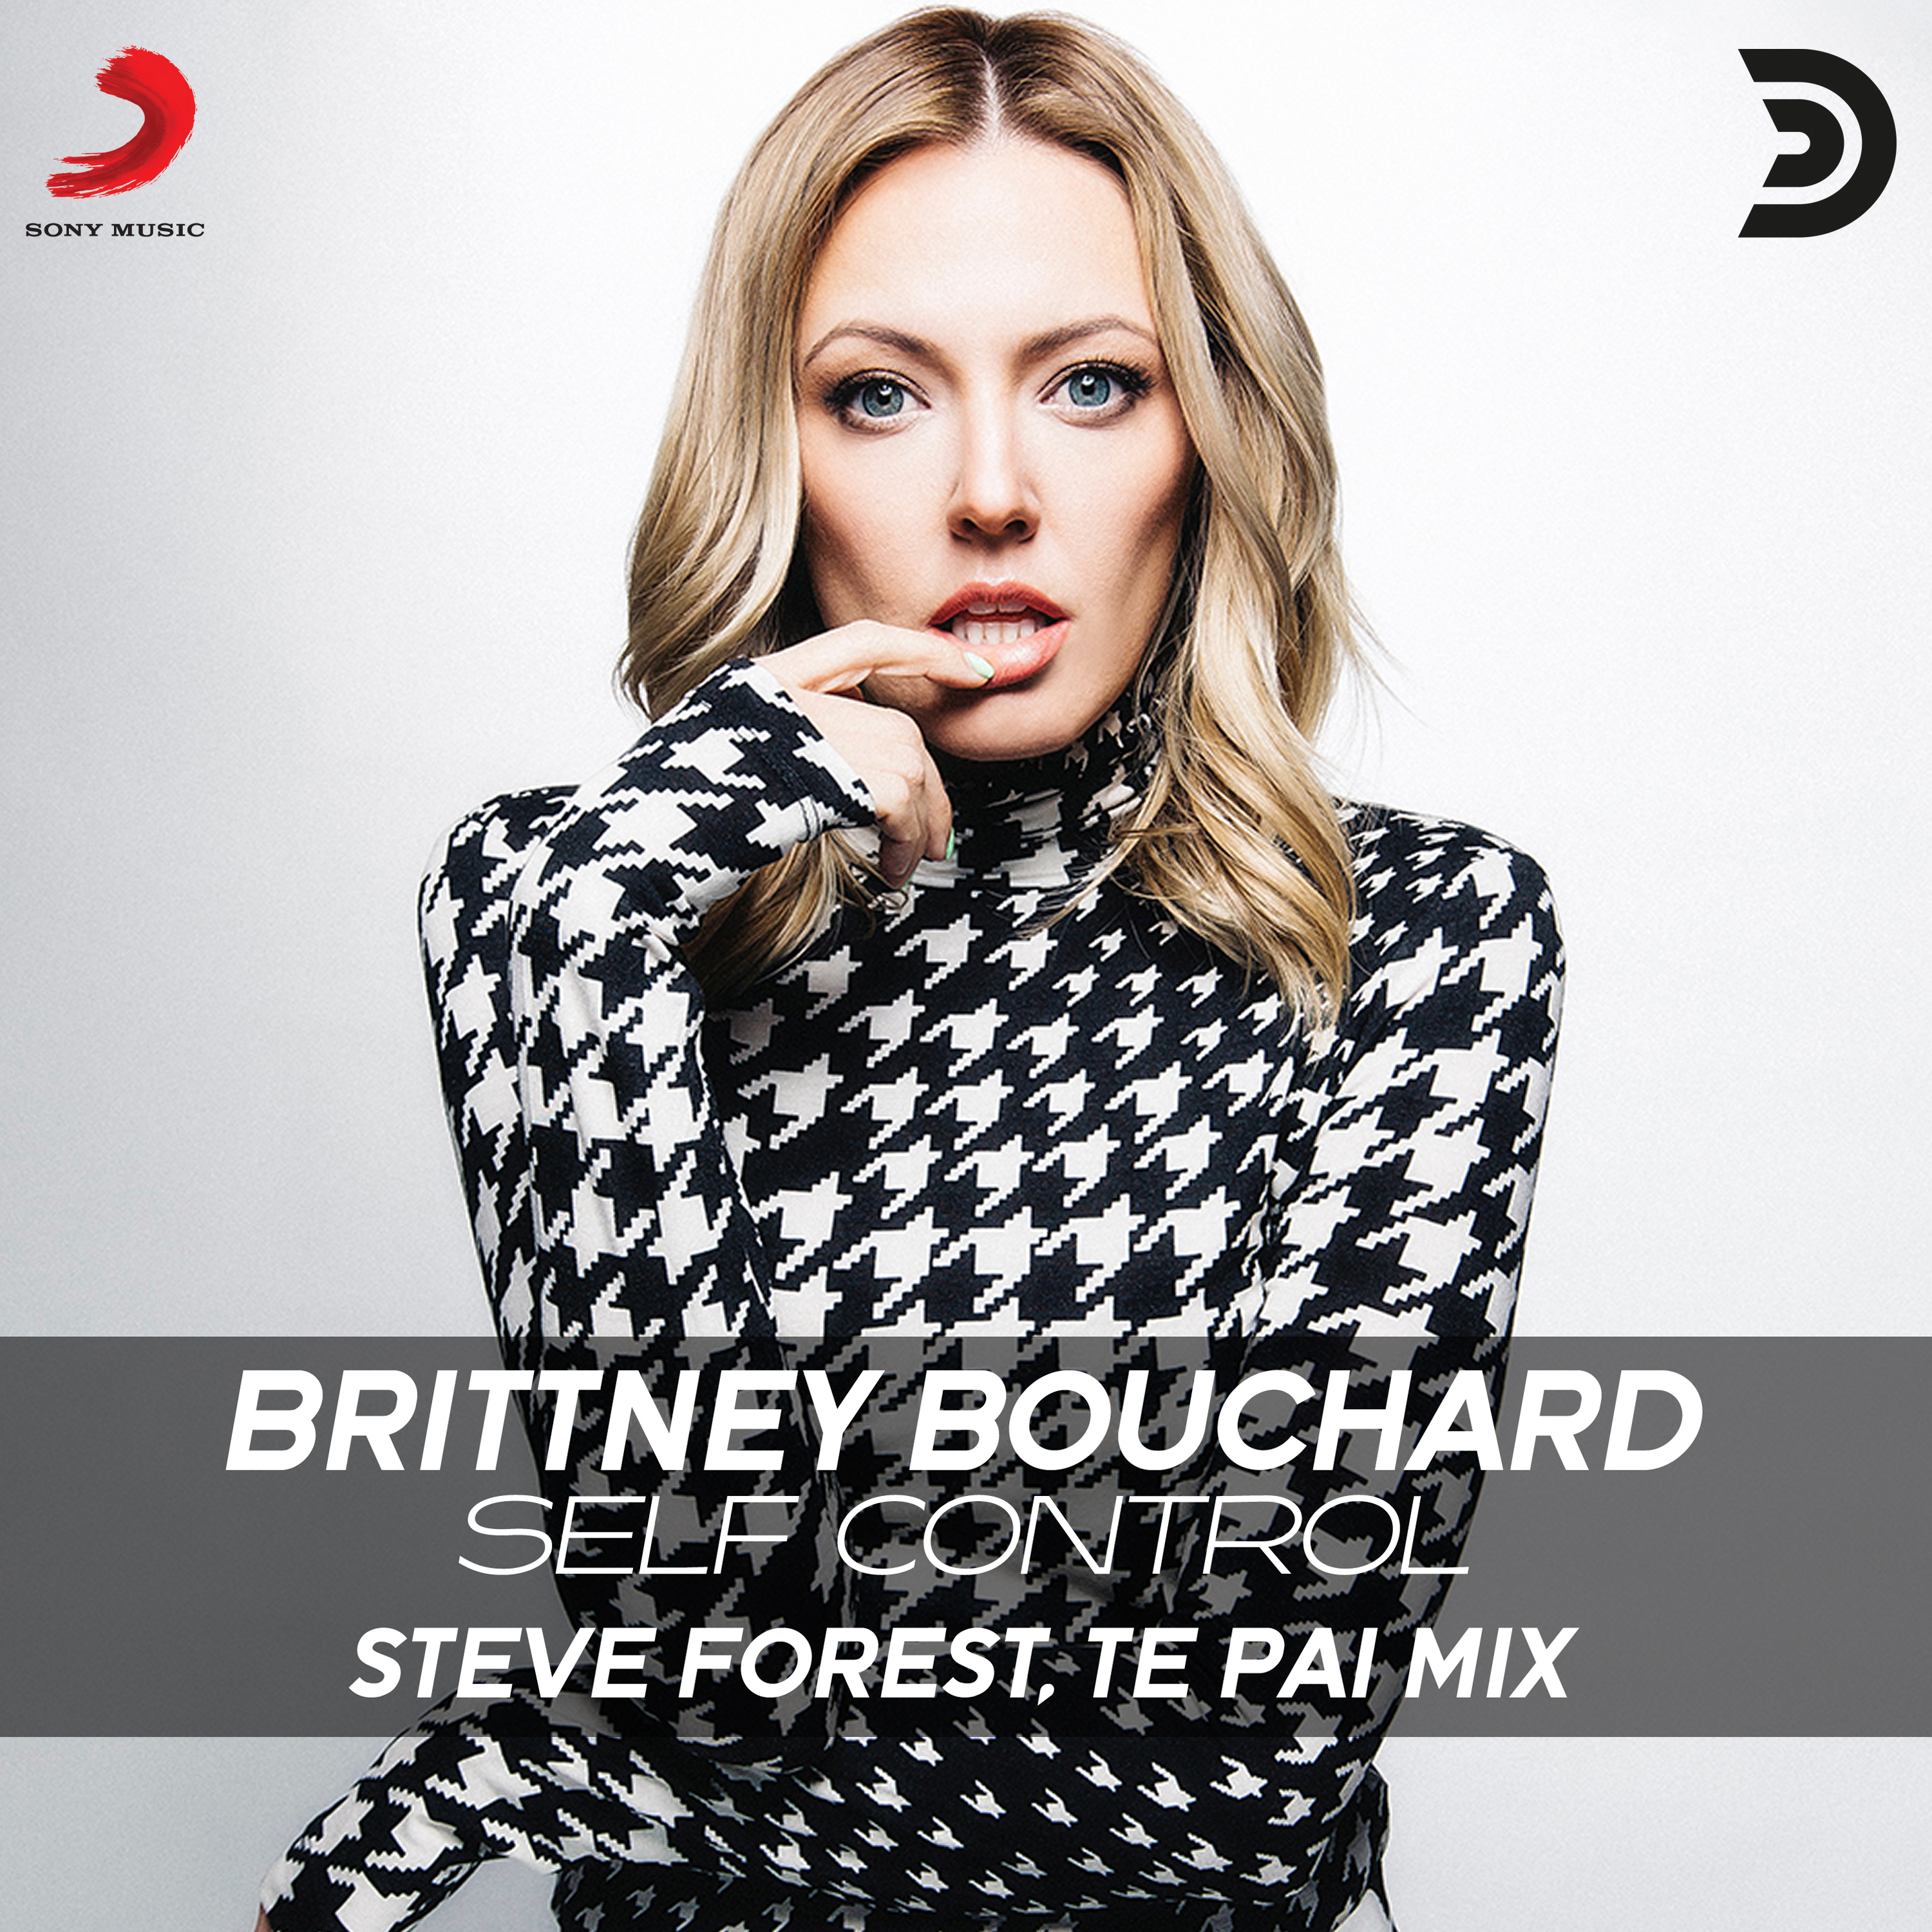 BRITTNEY BOUCHARD - Self control (Steve Forest, Te Pai mix)